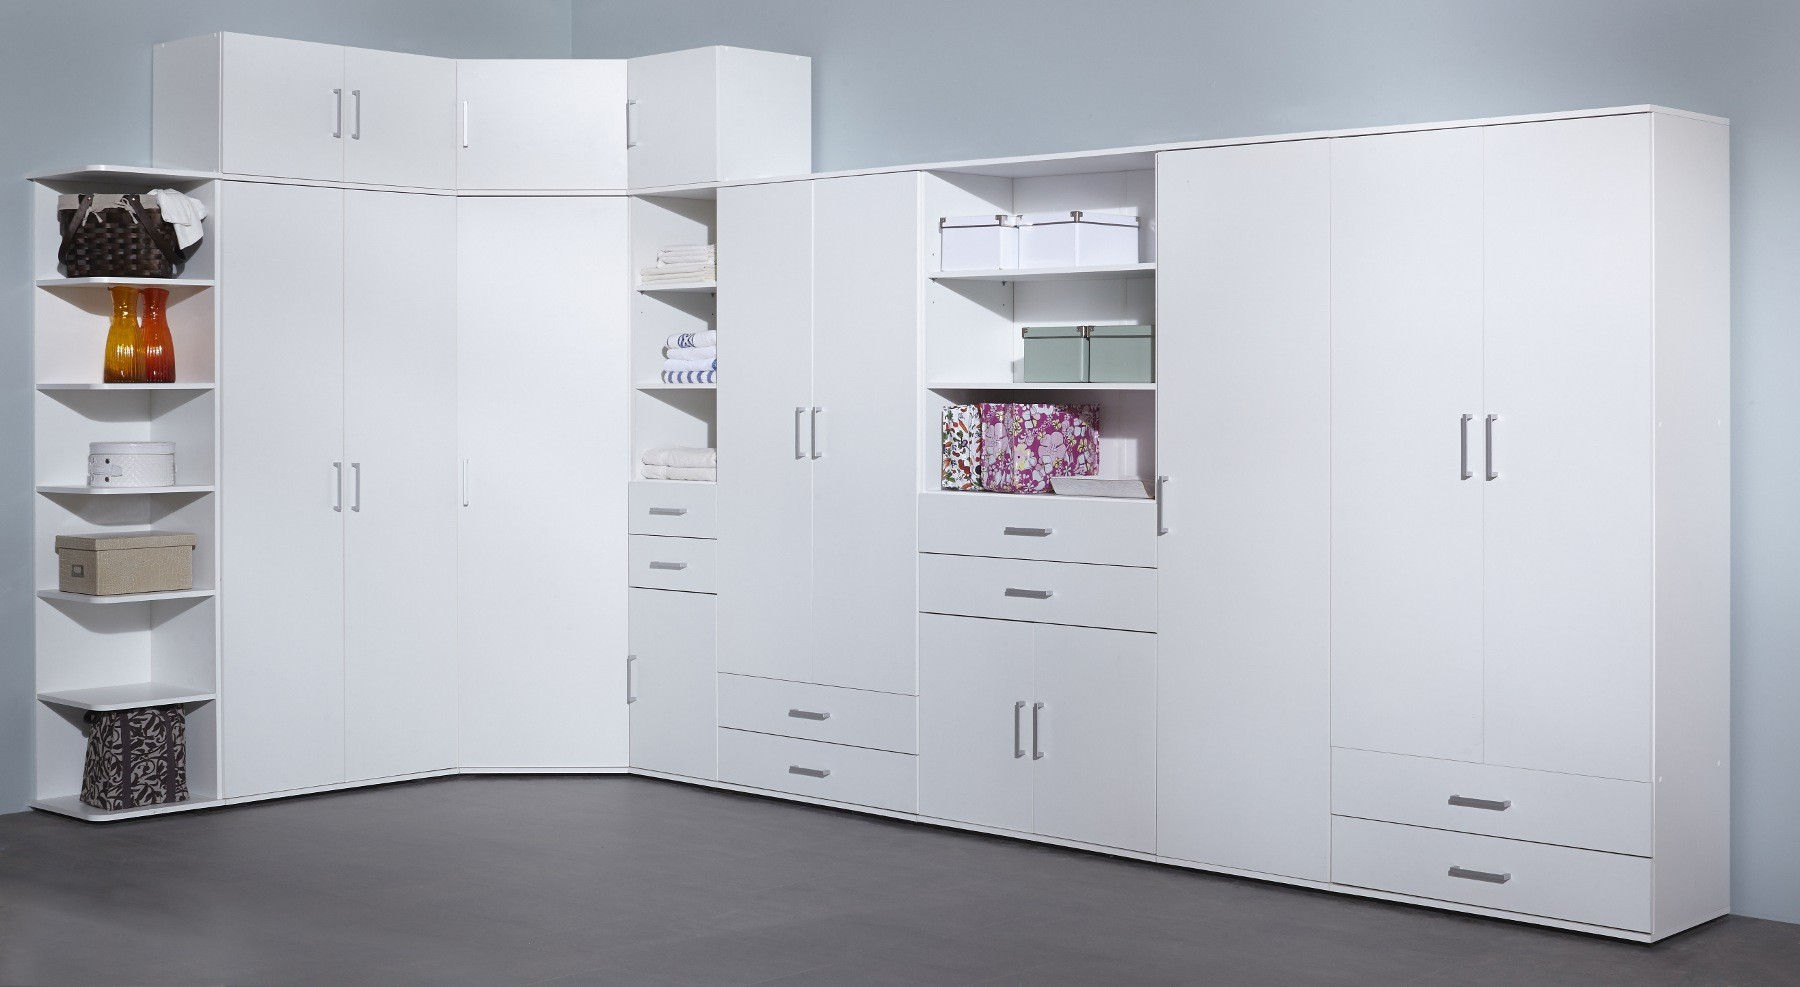 neu mehrzweckschrank ronny aufbewahrungsschrank schuhschrank mit 2 t ren wei ebay. Black Bedroom Furniture Sets. Home Design Ideas